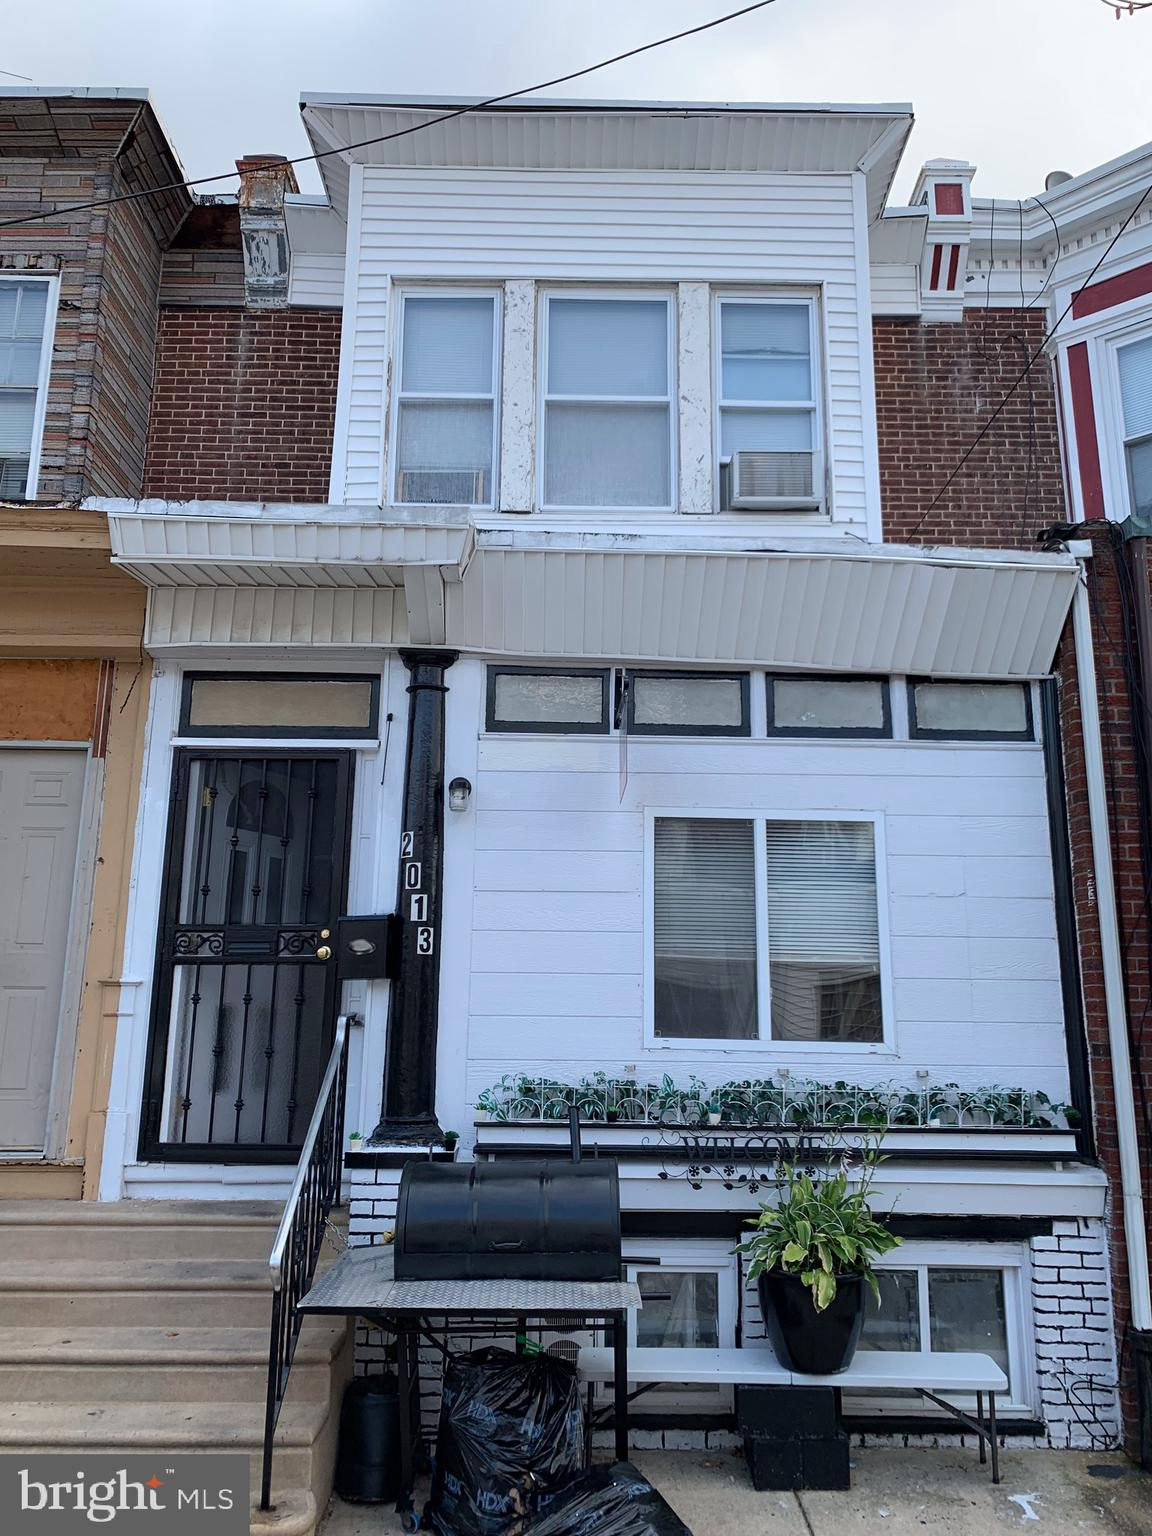 2013 S BONSALL STREET, PHILADELPHIA, Pennsylvania 19145, 3 Bedrooms Bedrooms, ,2 BathroomsBathrooms,Townhouse,For Sale,2013 S BONSALL STREET,PAPH821452